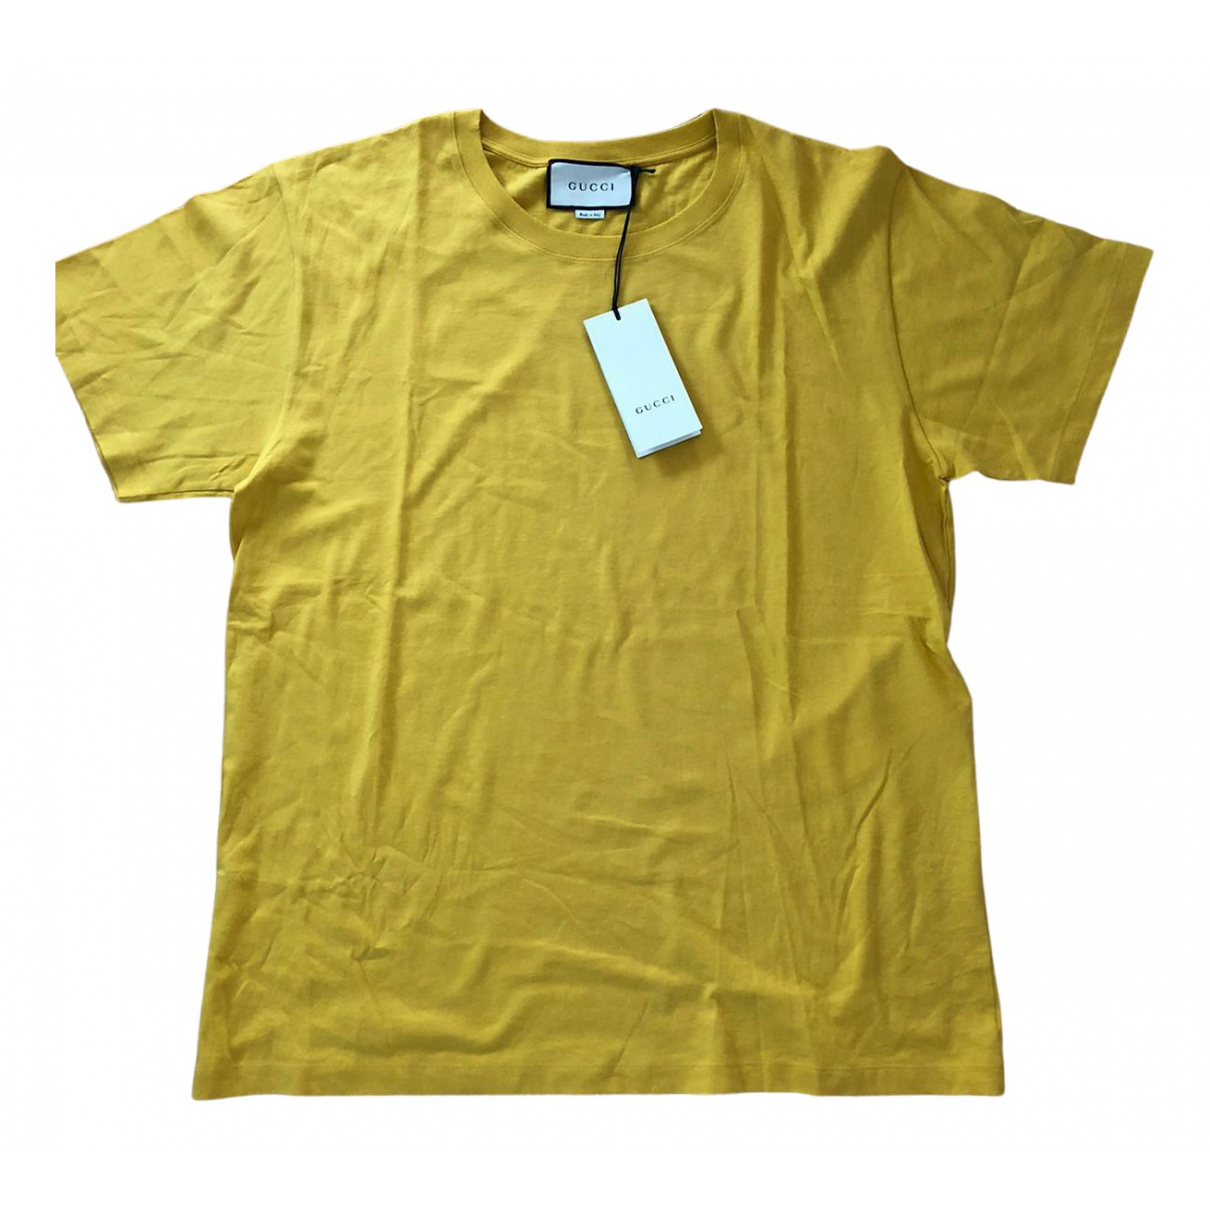 Gucci \N Yellow Cotton  top for Women L International